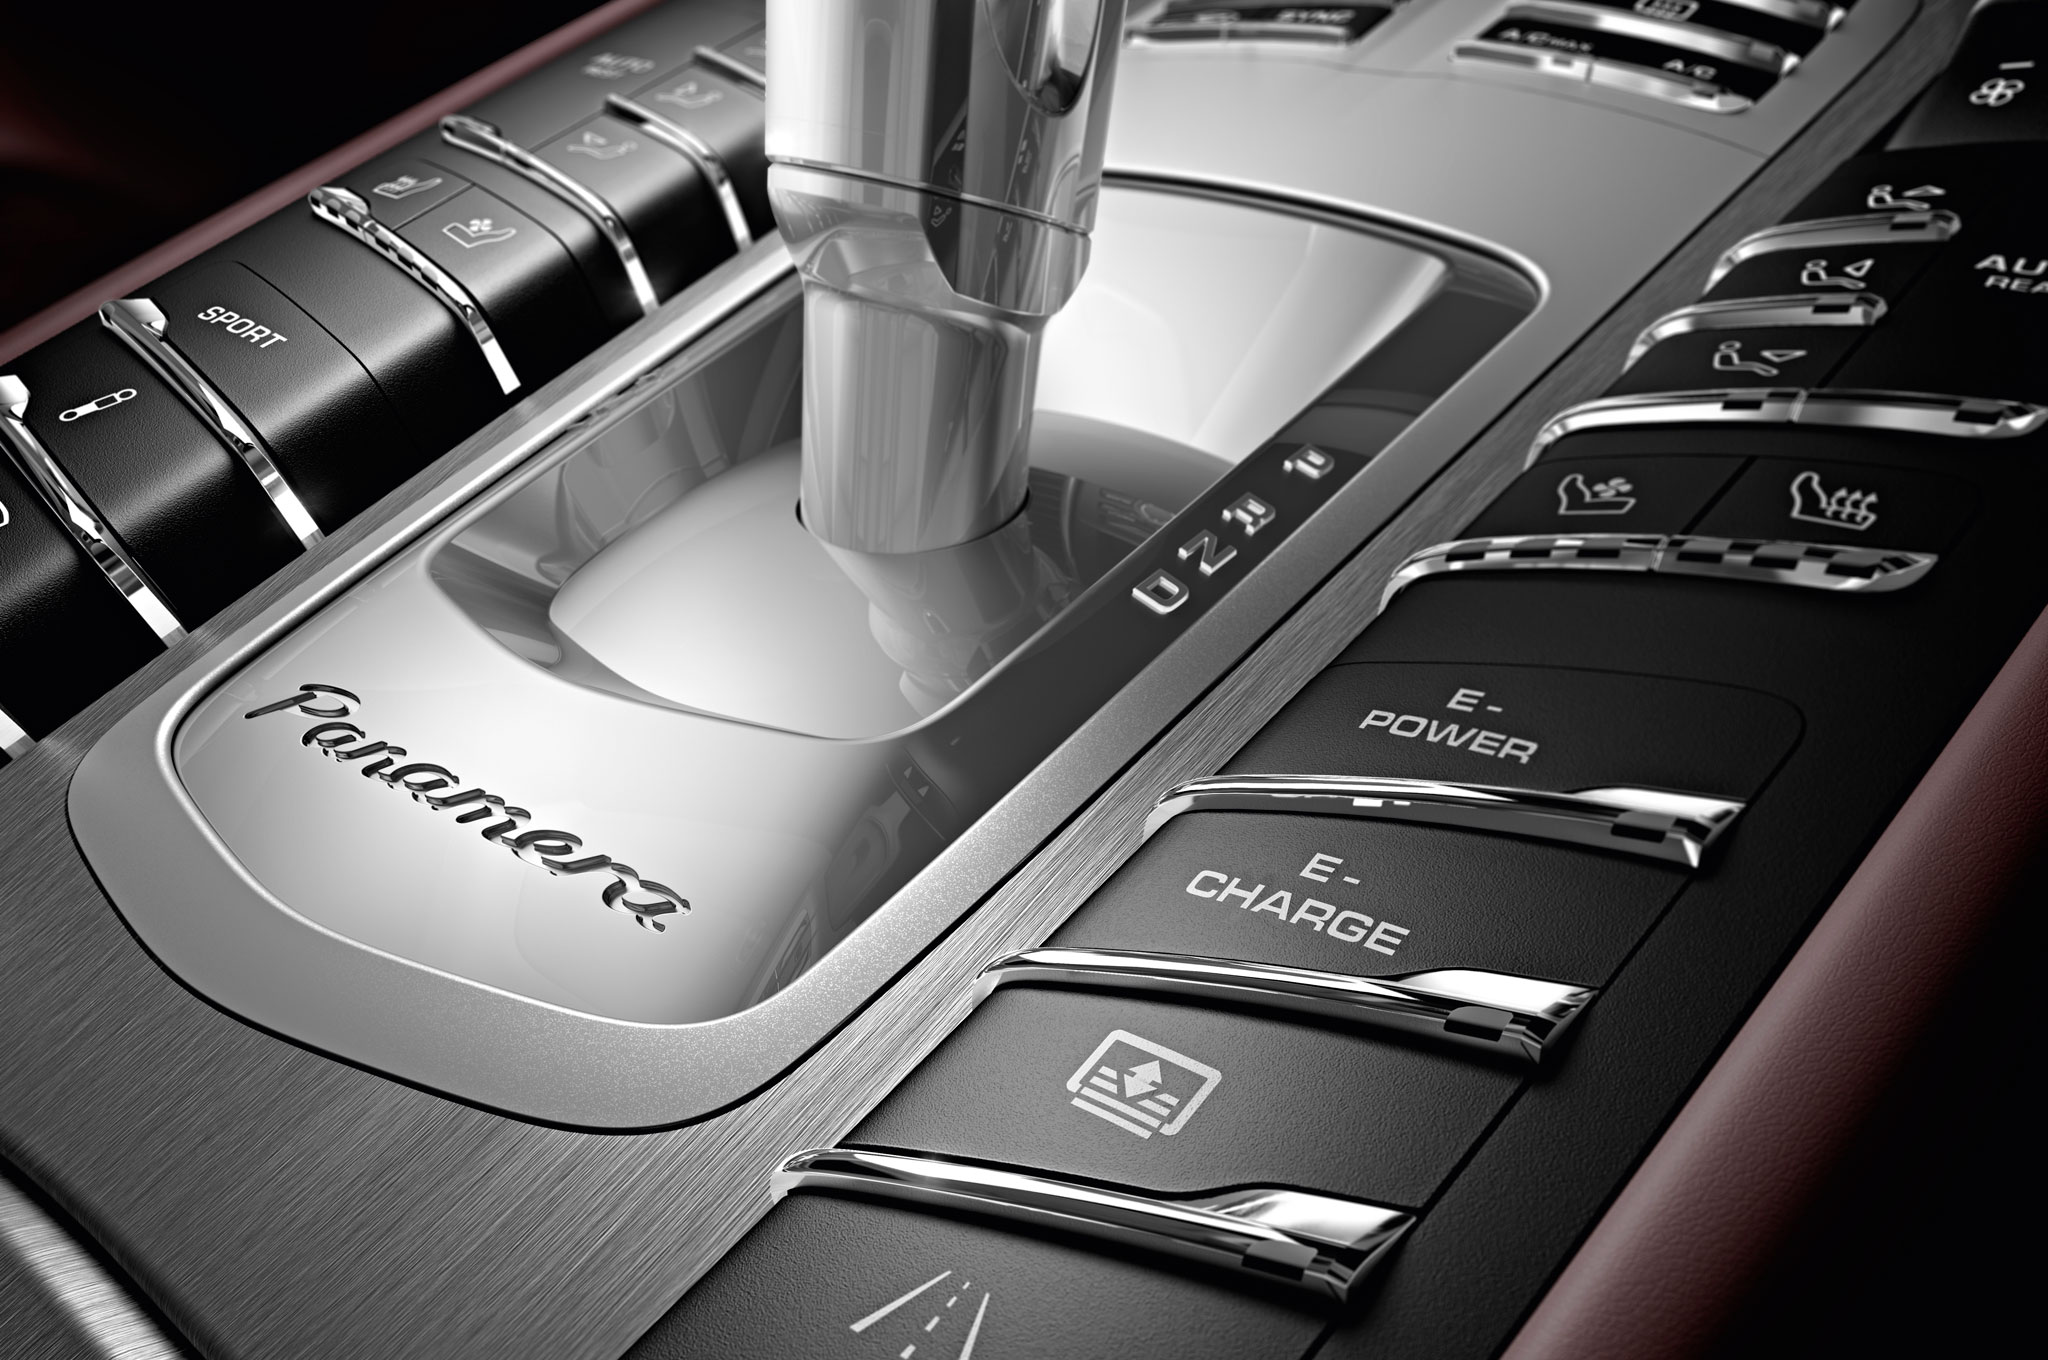 2014 porsche panamera interior car tuning - Continual Improvement The Remaining Changes For The 2014 Porsche Panamera